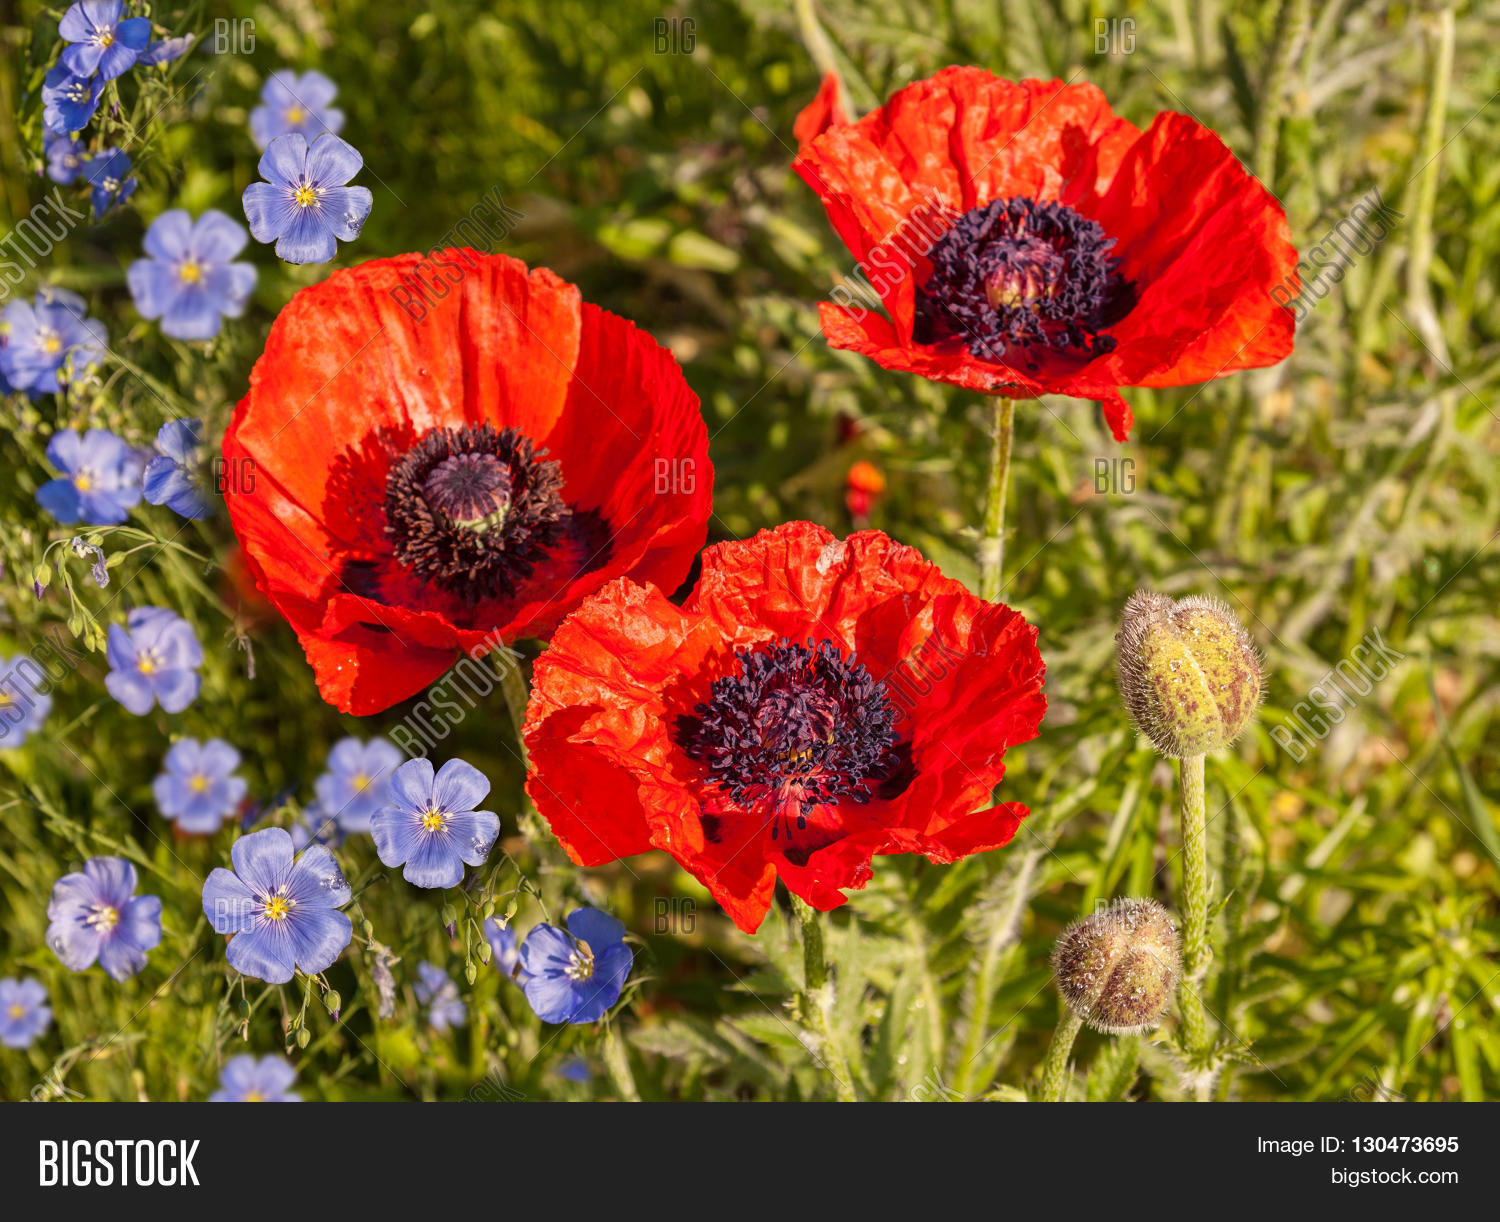 Flower Bed Blooming Image Photo Free Trial Bigstock